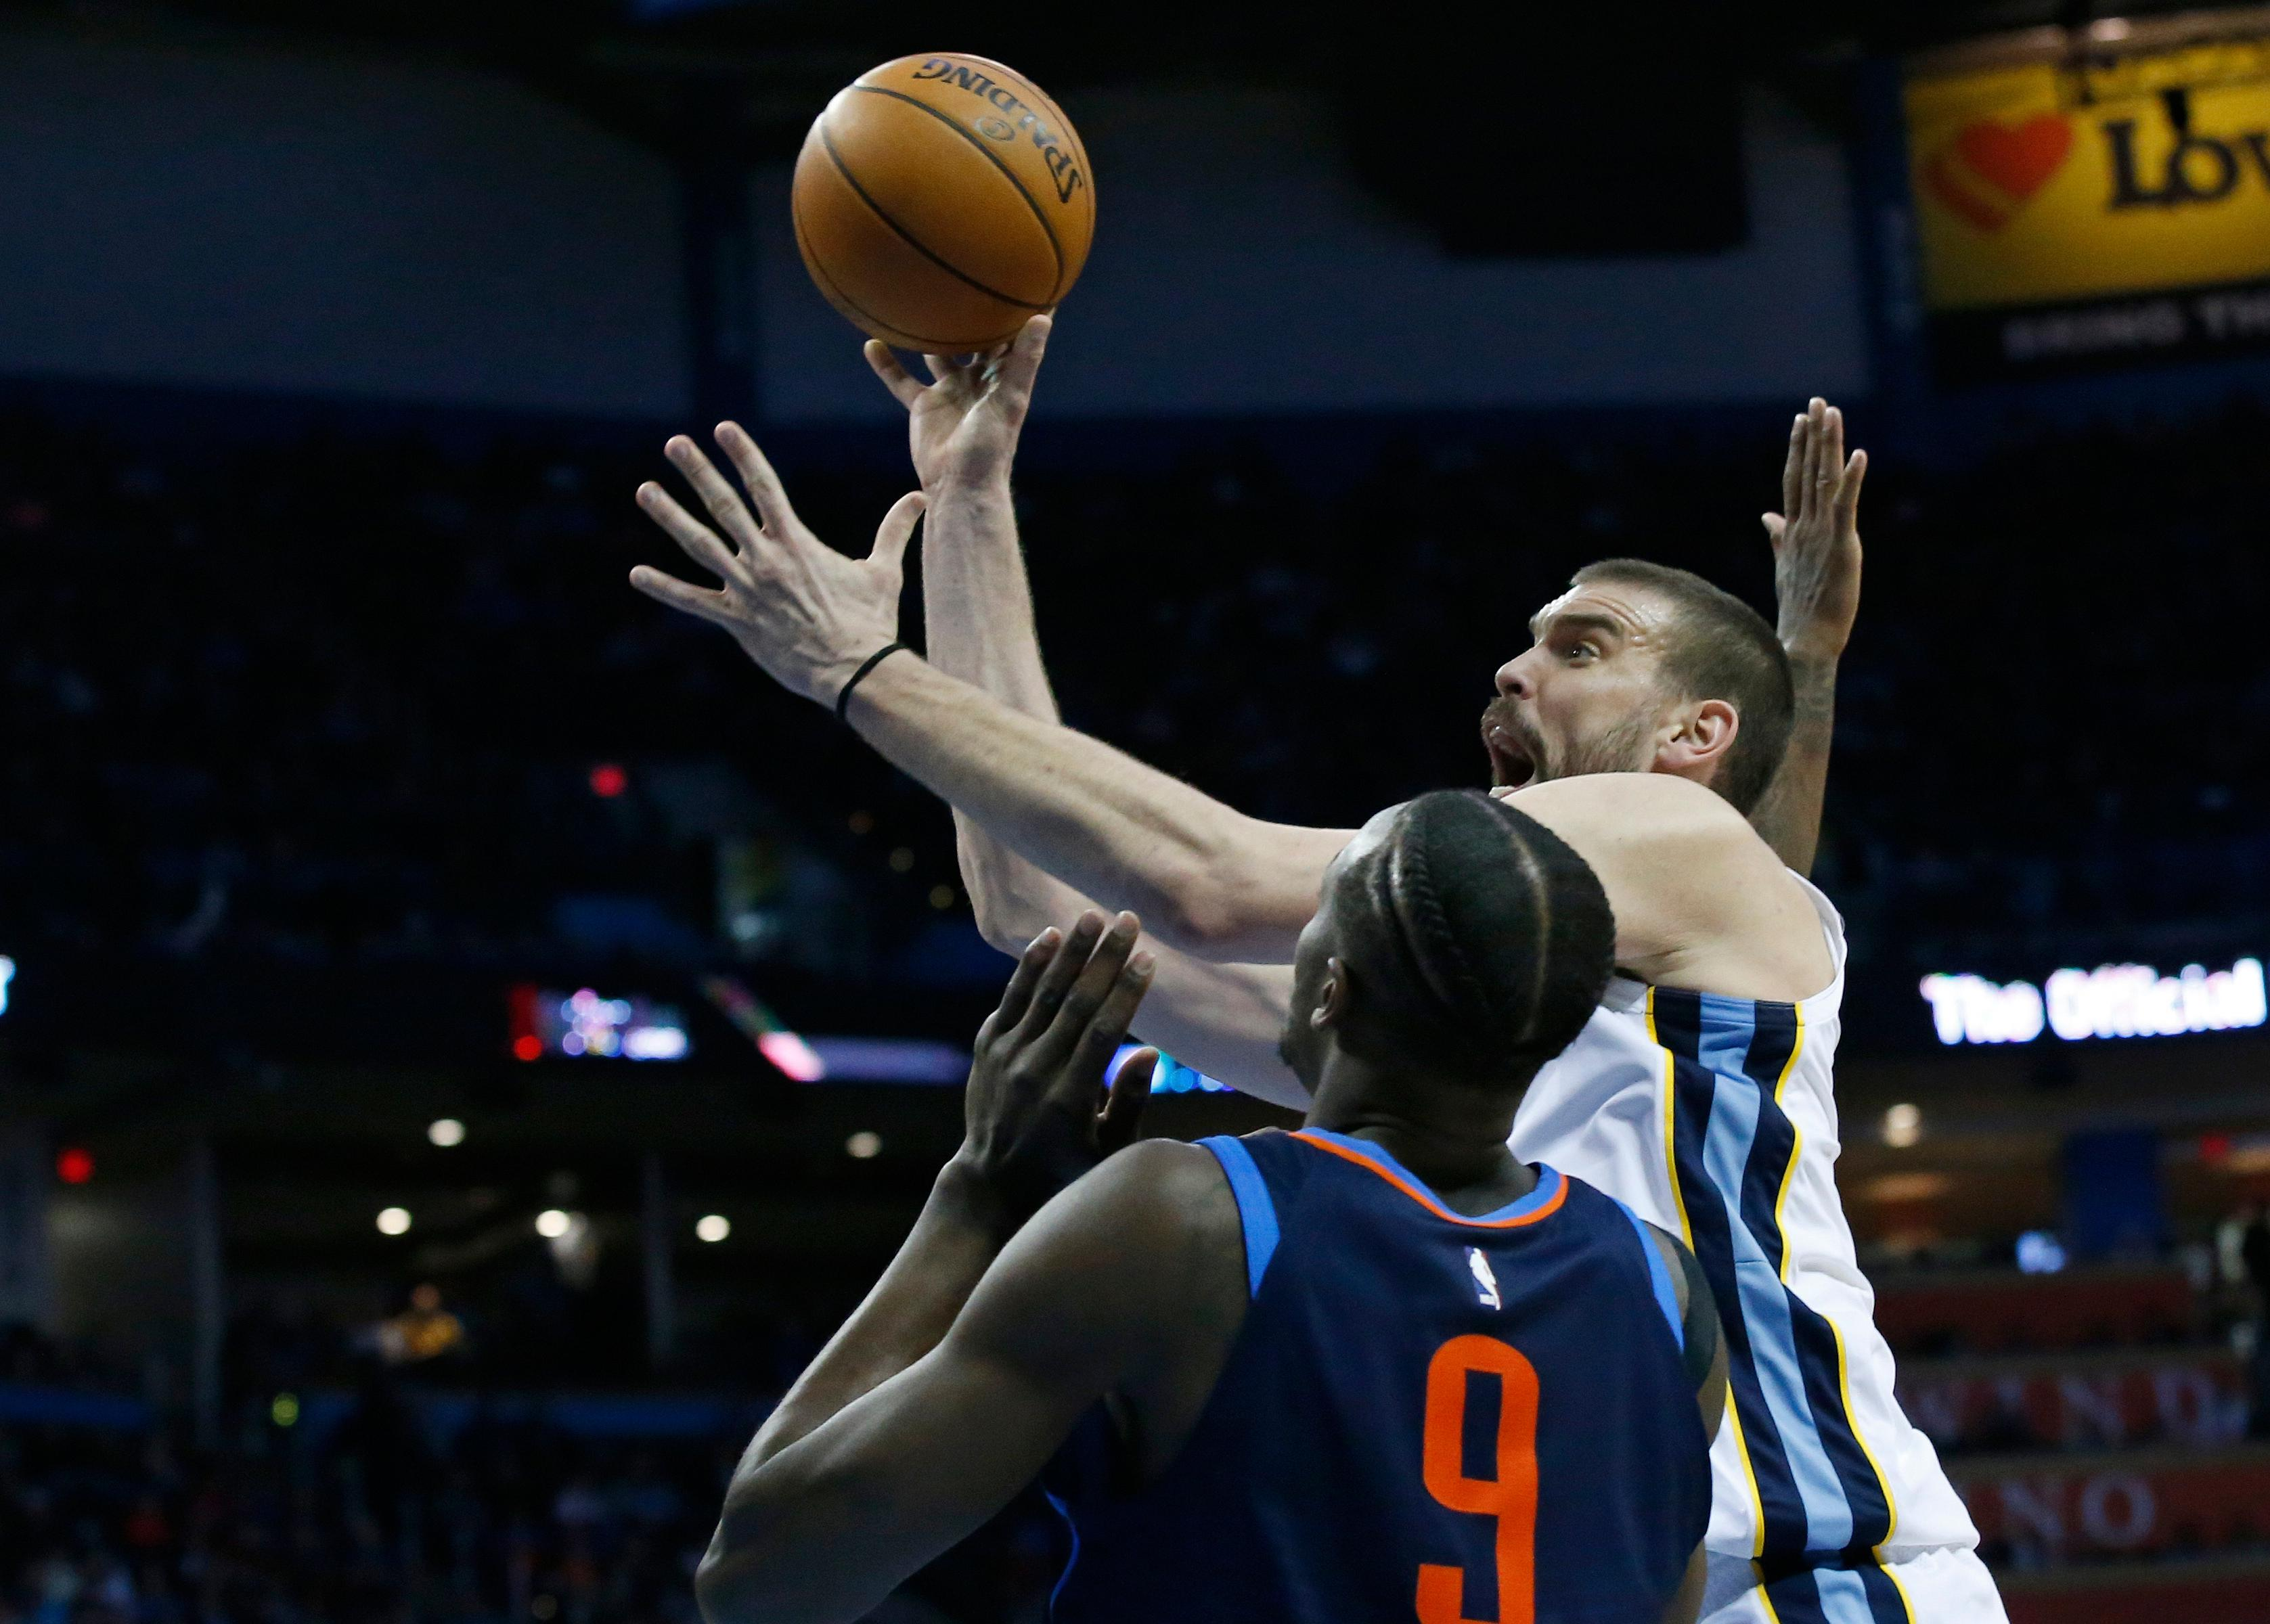 Memphis Grizzlies center Marc Gasol, right, shoots in front of Oklahoma City Thunder forward Jerami Grant (9) in the first half of an NBA basketball game in Oklahoma City, Sunday, Feb. 11, 2018. (AP Photo/Sue Ogrocki)